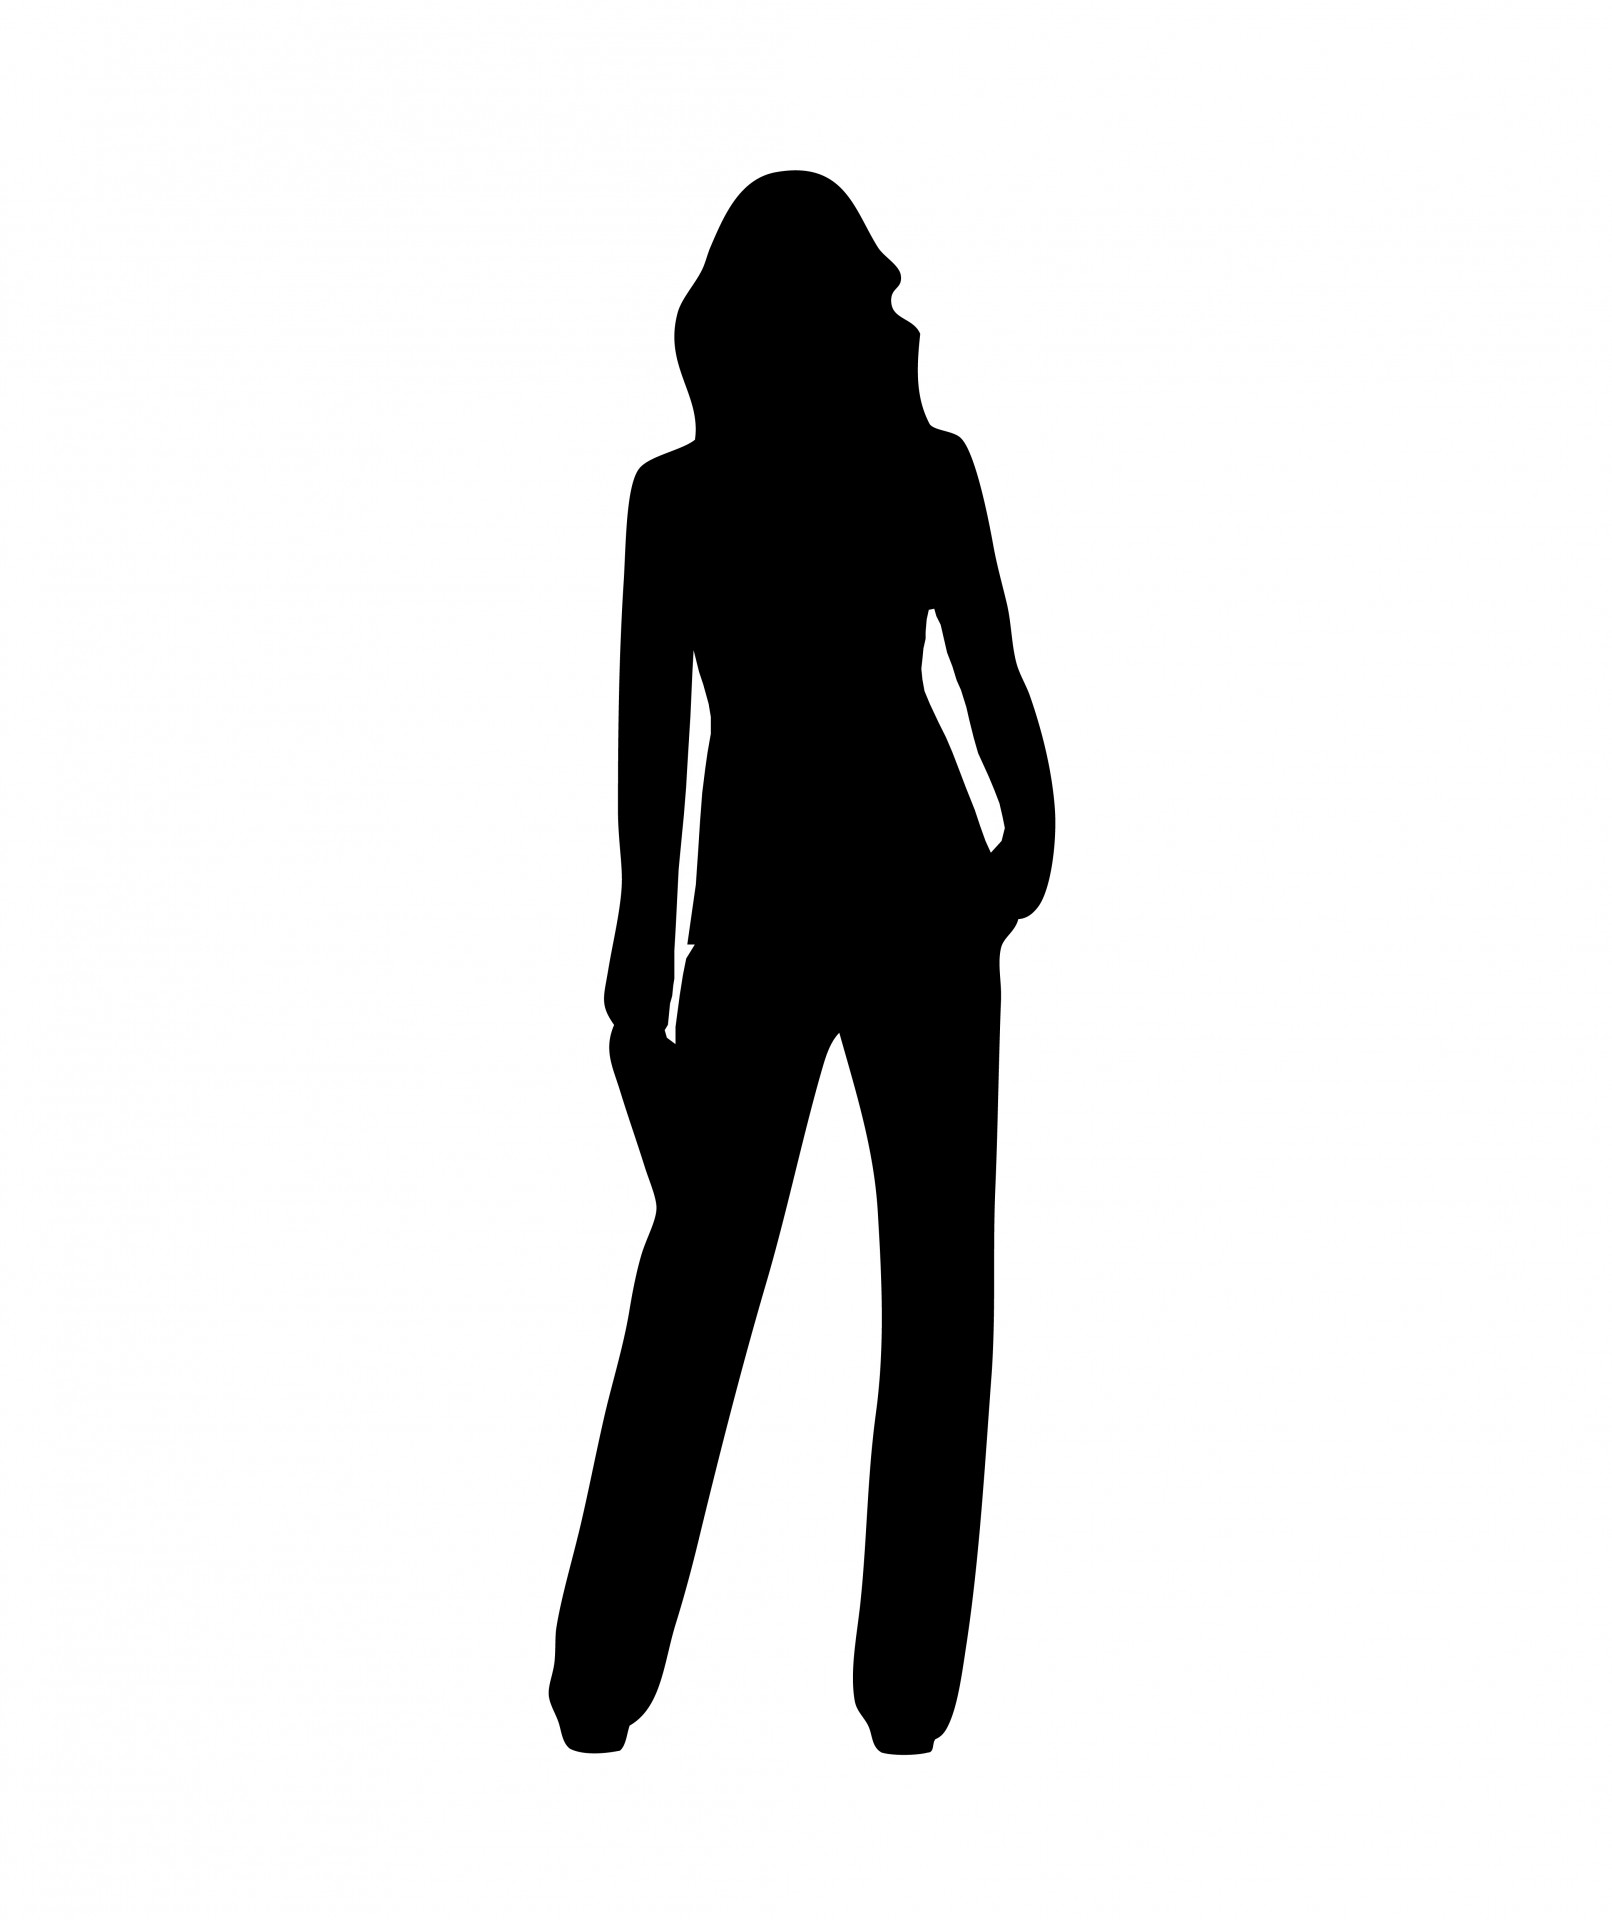 1612x1920 Woman Silhouette Free Stock Photo